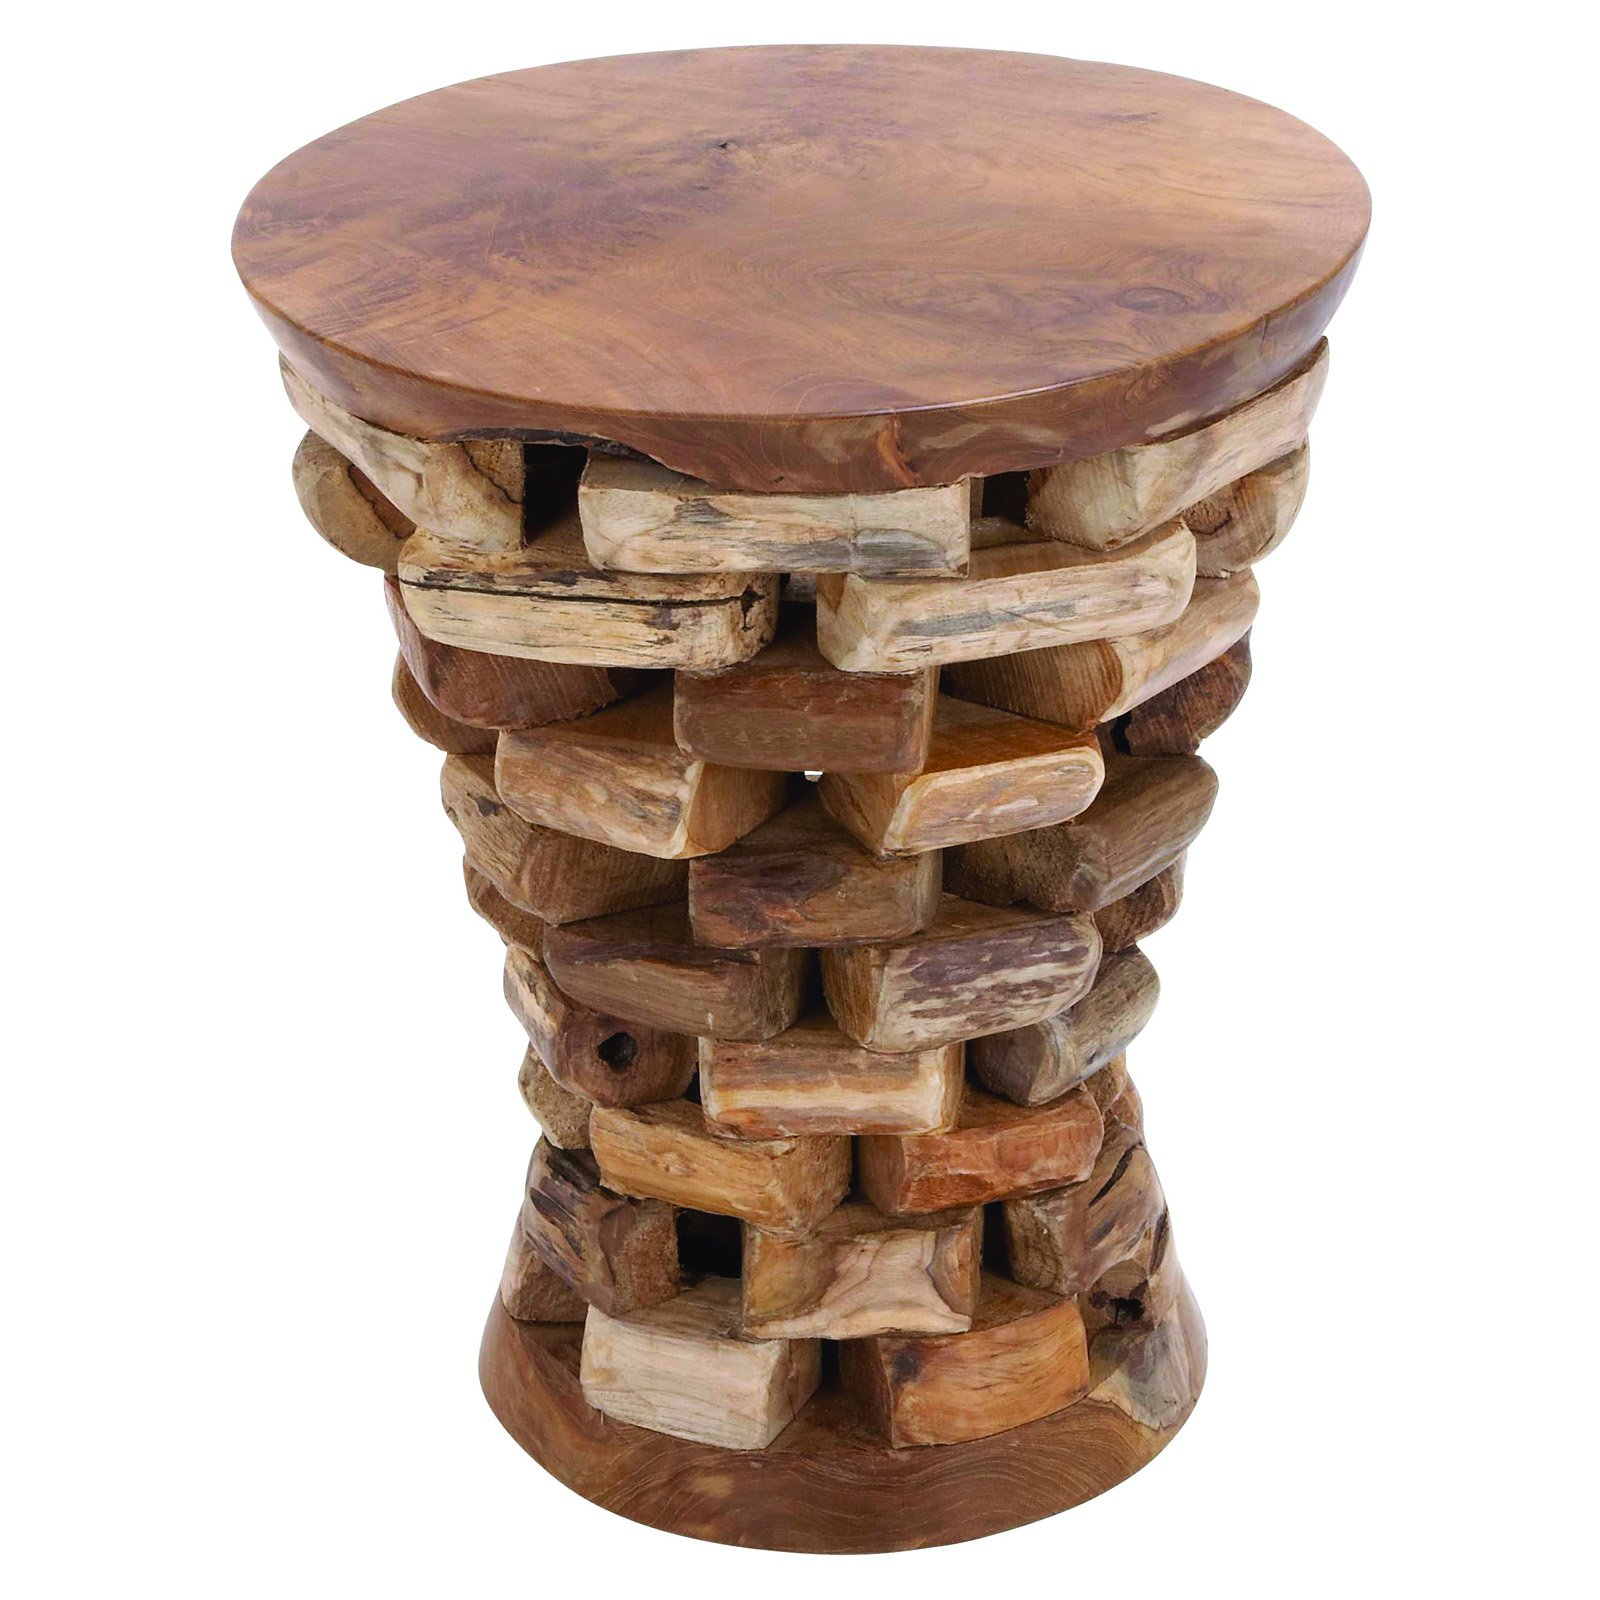 ikea cube storage probably super awesome drum end tables wood natural table top benzara round shaped teak wooden accent sears living room furniture vintage lane rustic dining